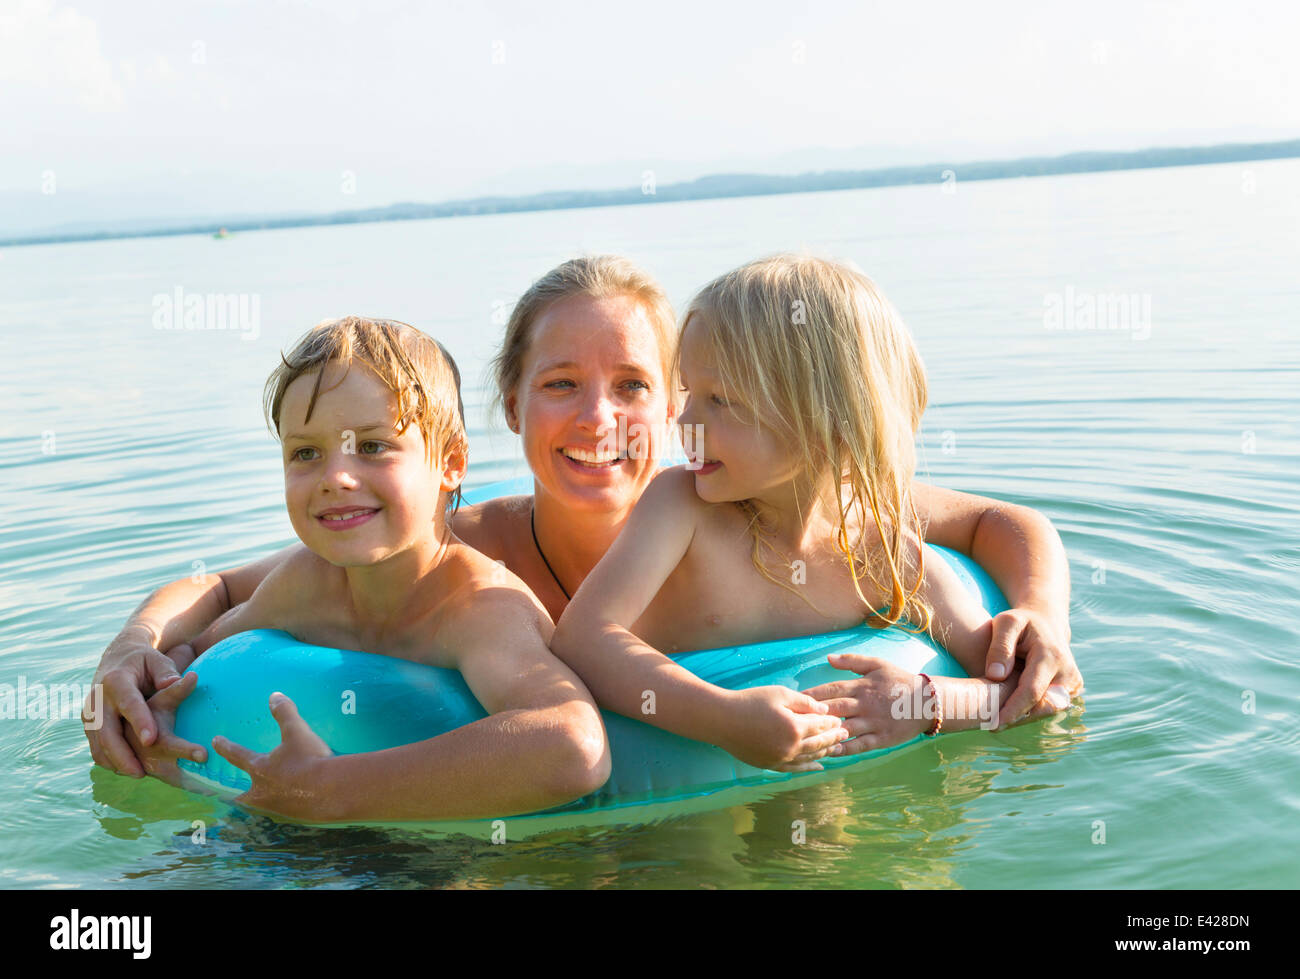 Mother with daughter and son in inflatable ring, Lake Starnberg, Bavaria, Germany - Stock Image